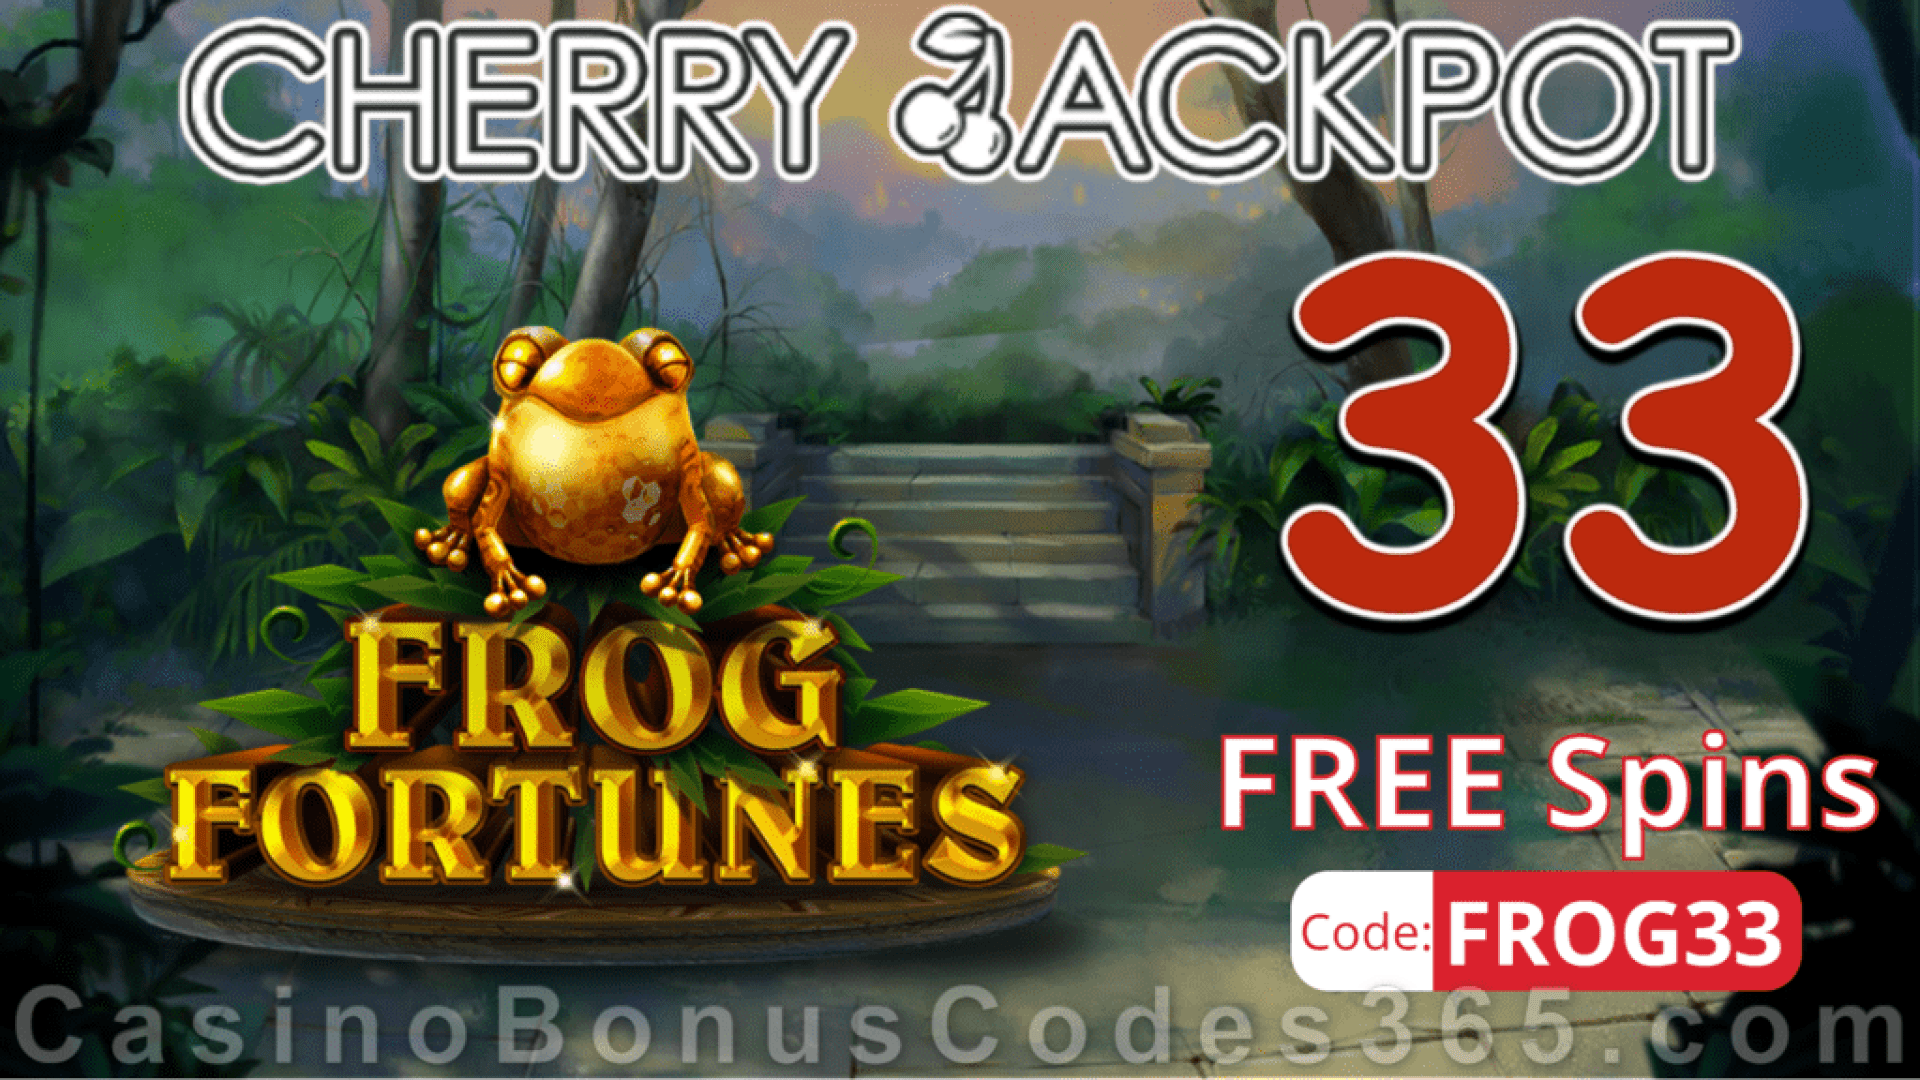 Cherry Jackpot 33 FREE Spins on Frog Fortunes New RTG Game No Deposit Special Deal